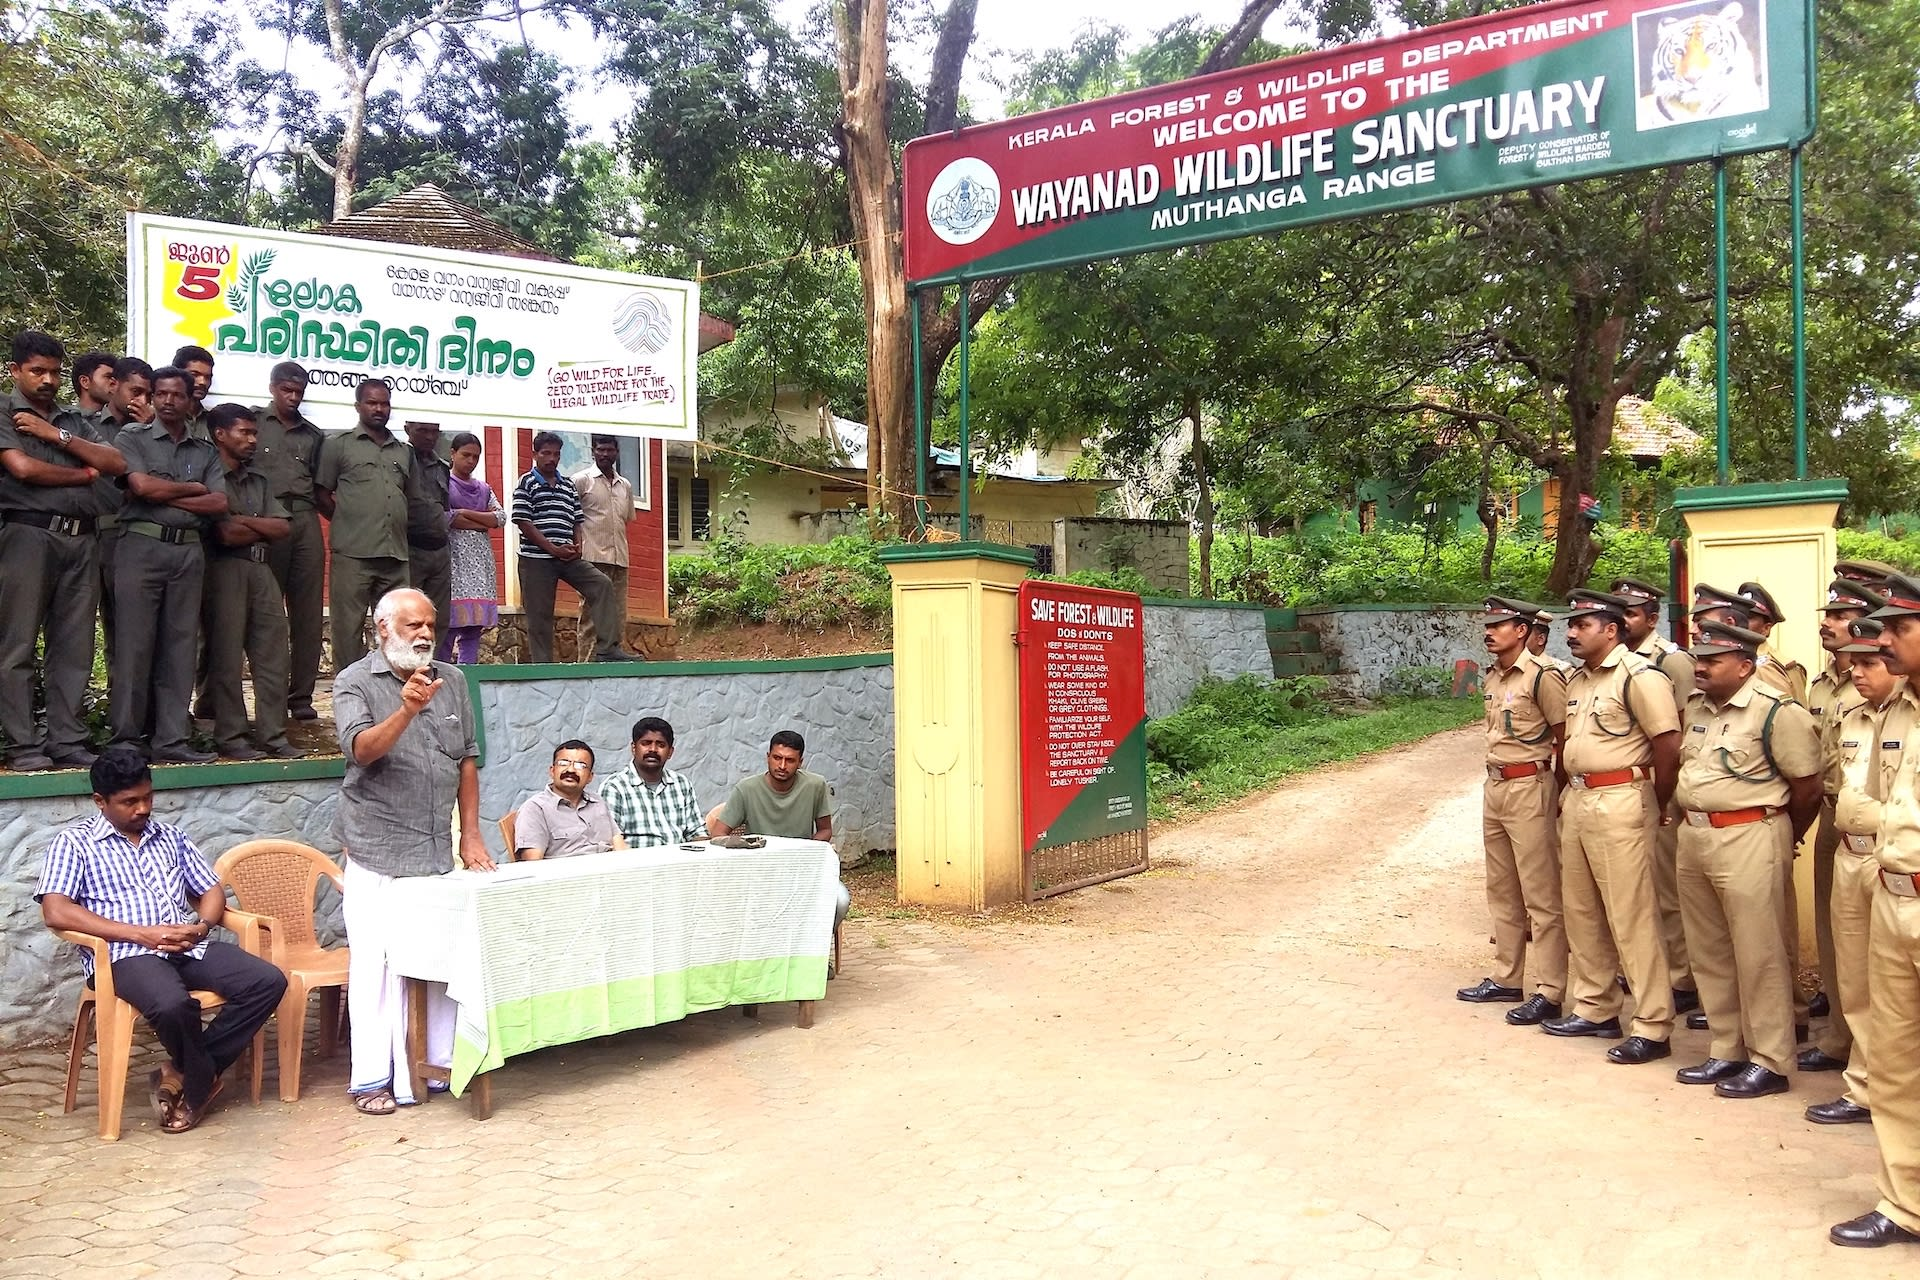 Photo of Badusha addressing forest officers at an awareness camp to mitigate human-elephant conflict held at the Muthanga range of the Wayanad Wildlife Sanctuary in 2015.